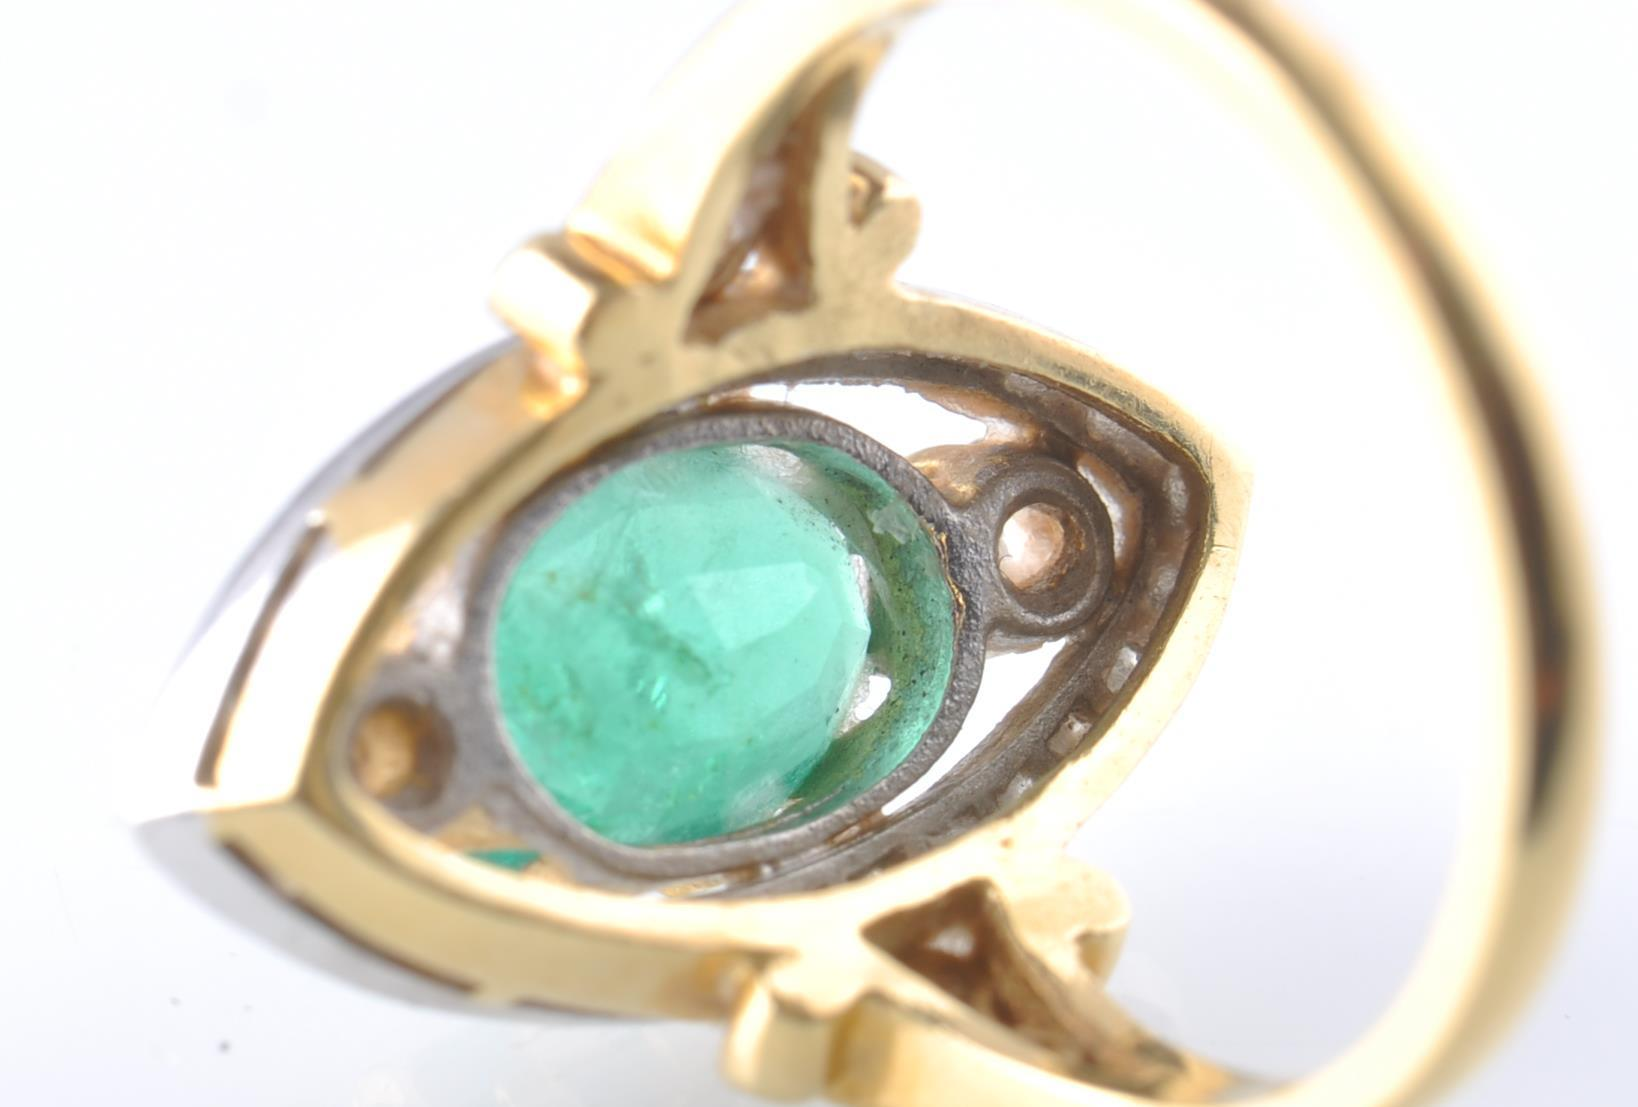 A HALLMARKED 18CT GOD EMERALD AND DIAMOND RING - Image 9 of 11